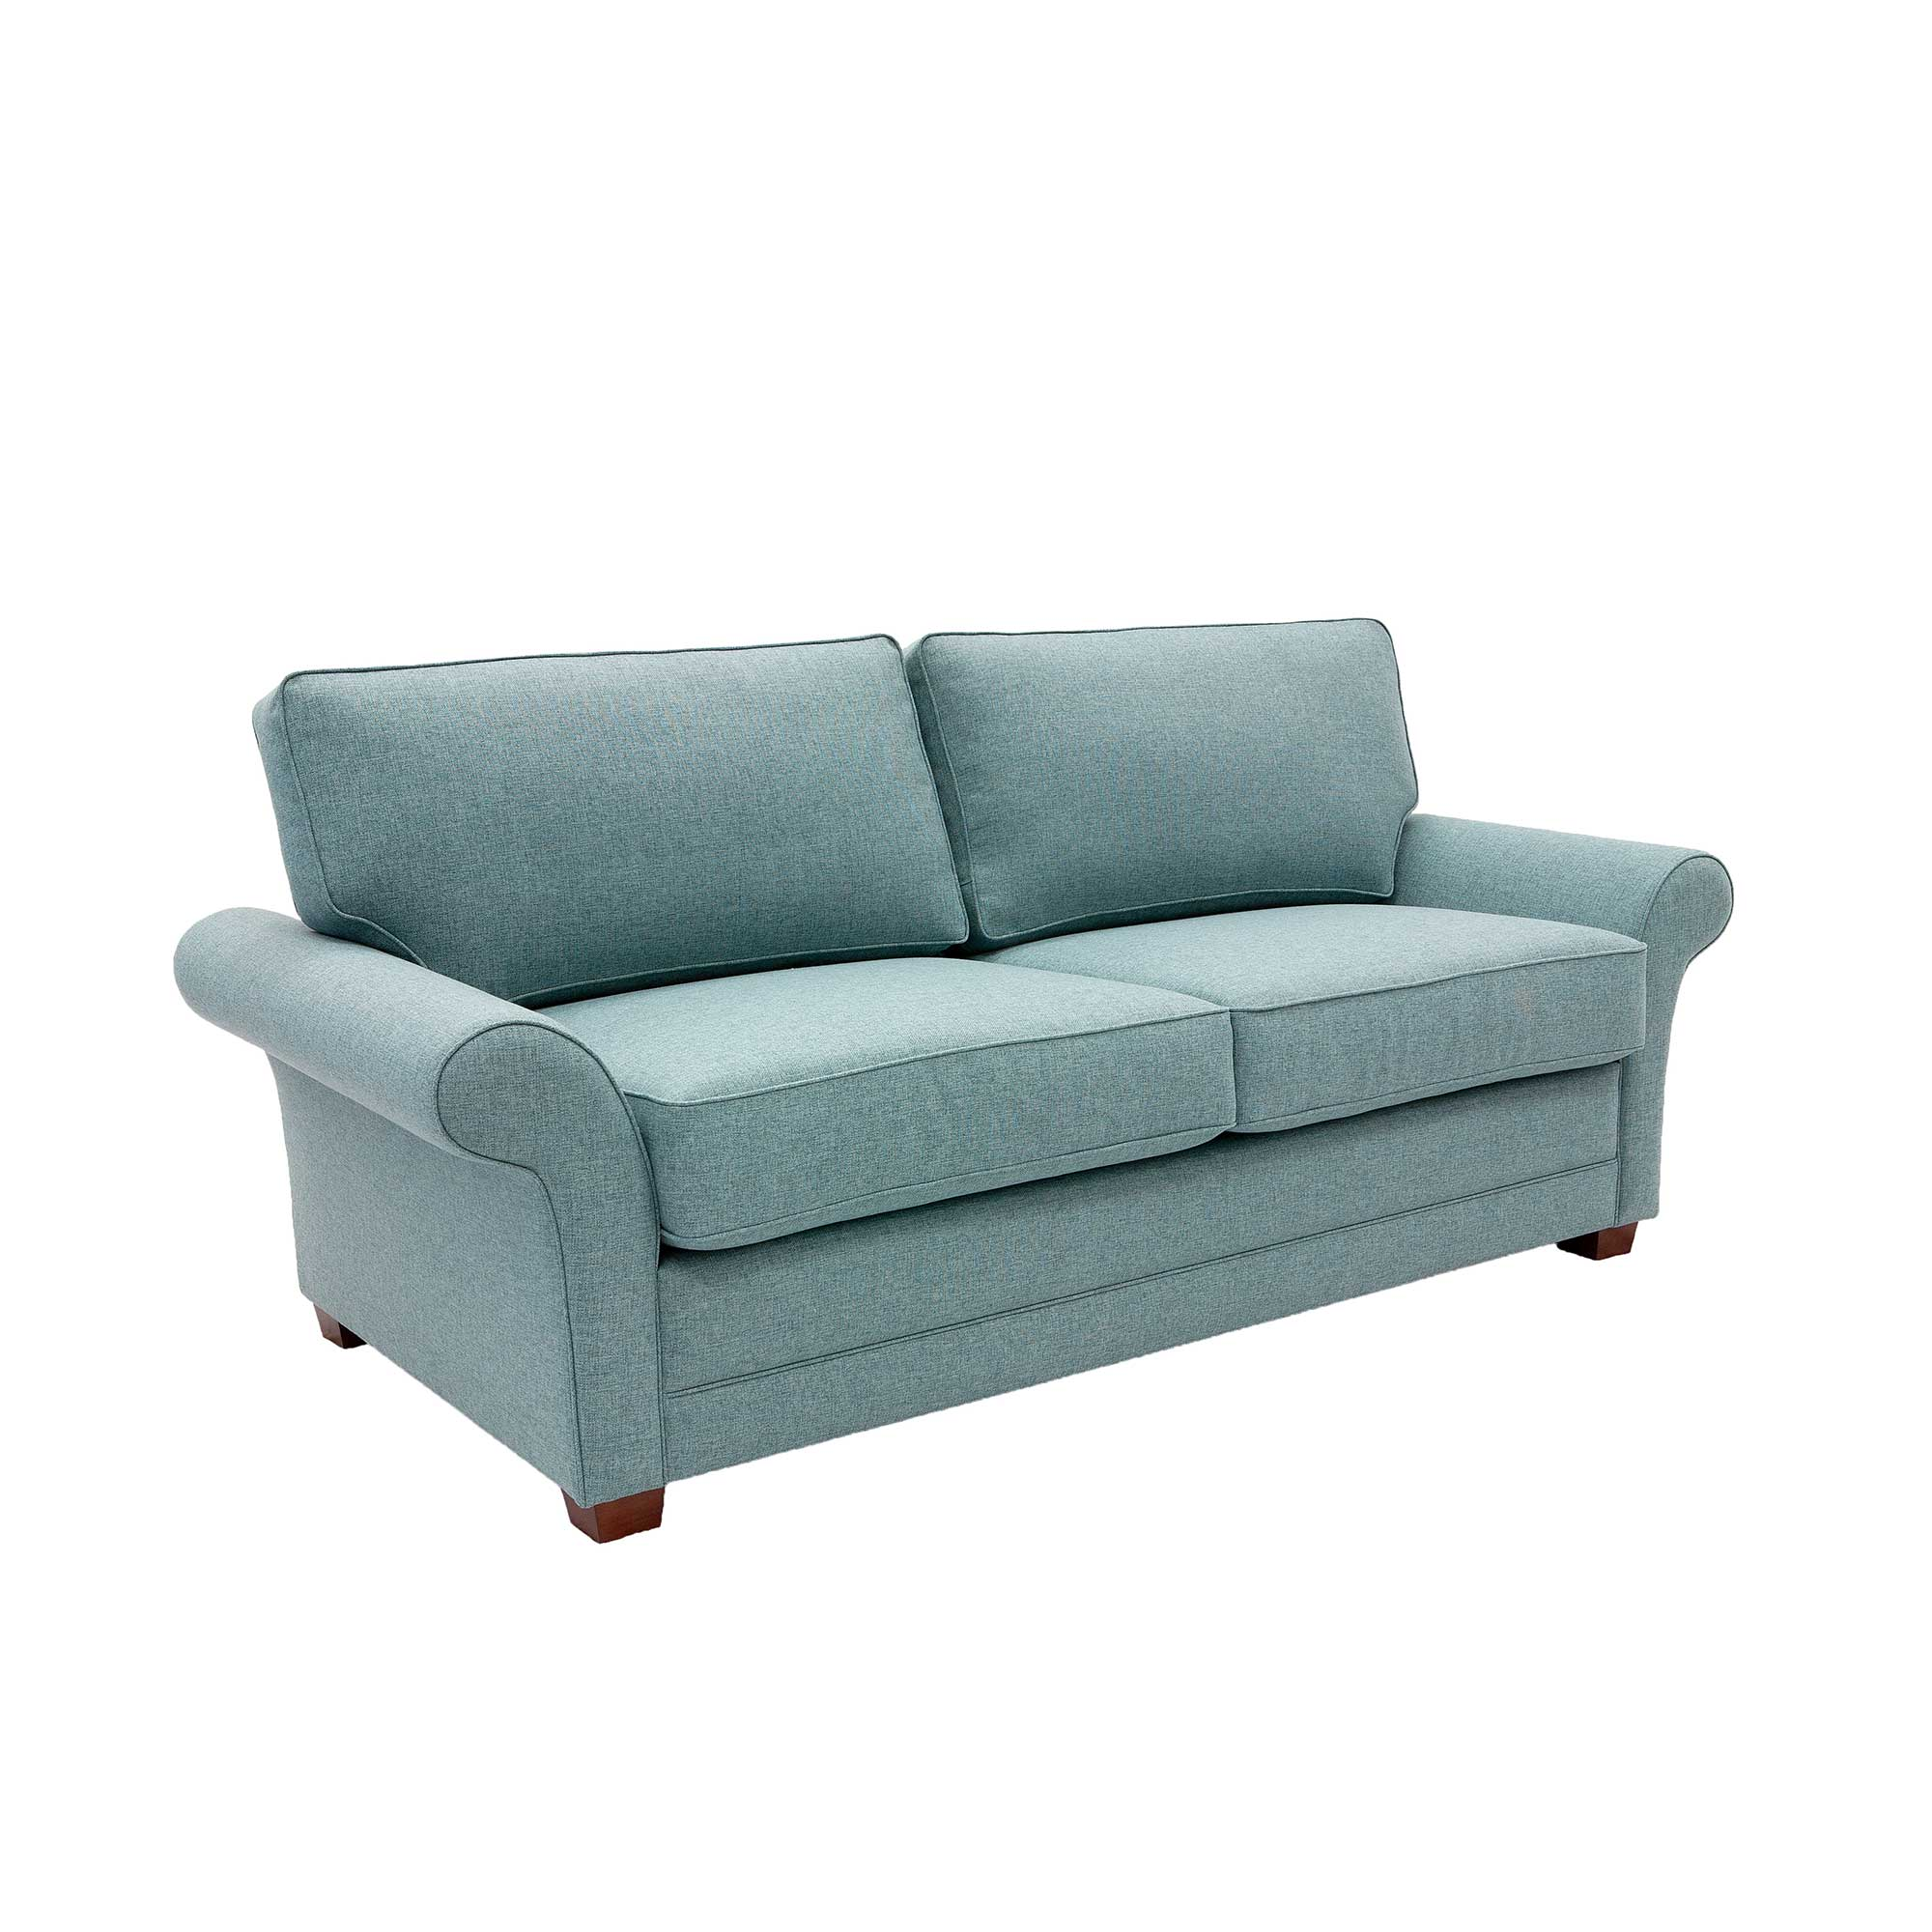 Best Sofas Australia Baxter Sofa Moran Furniture